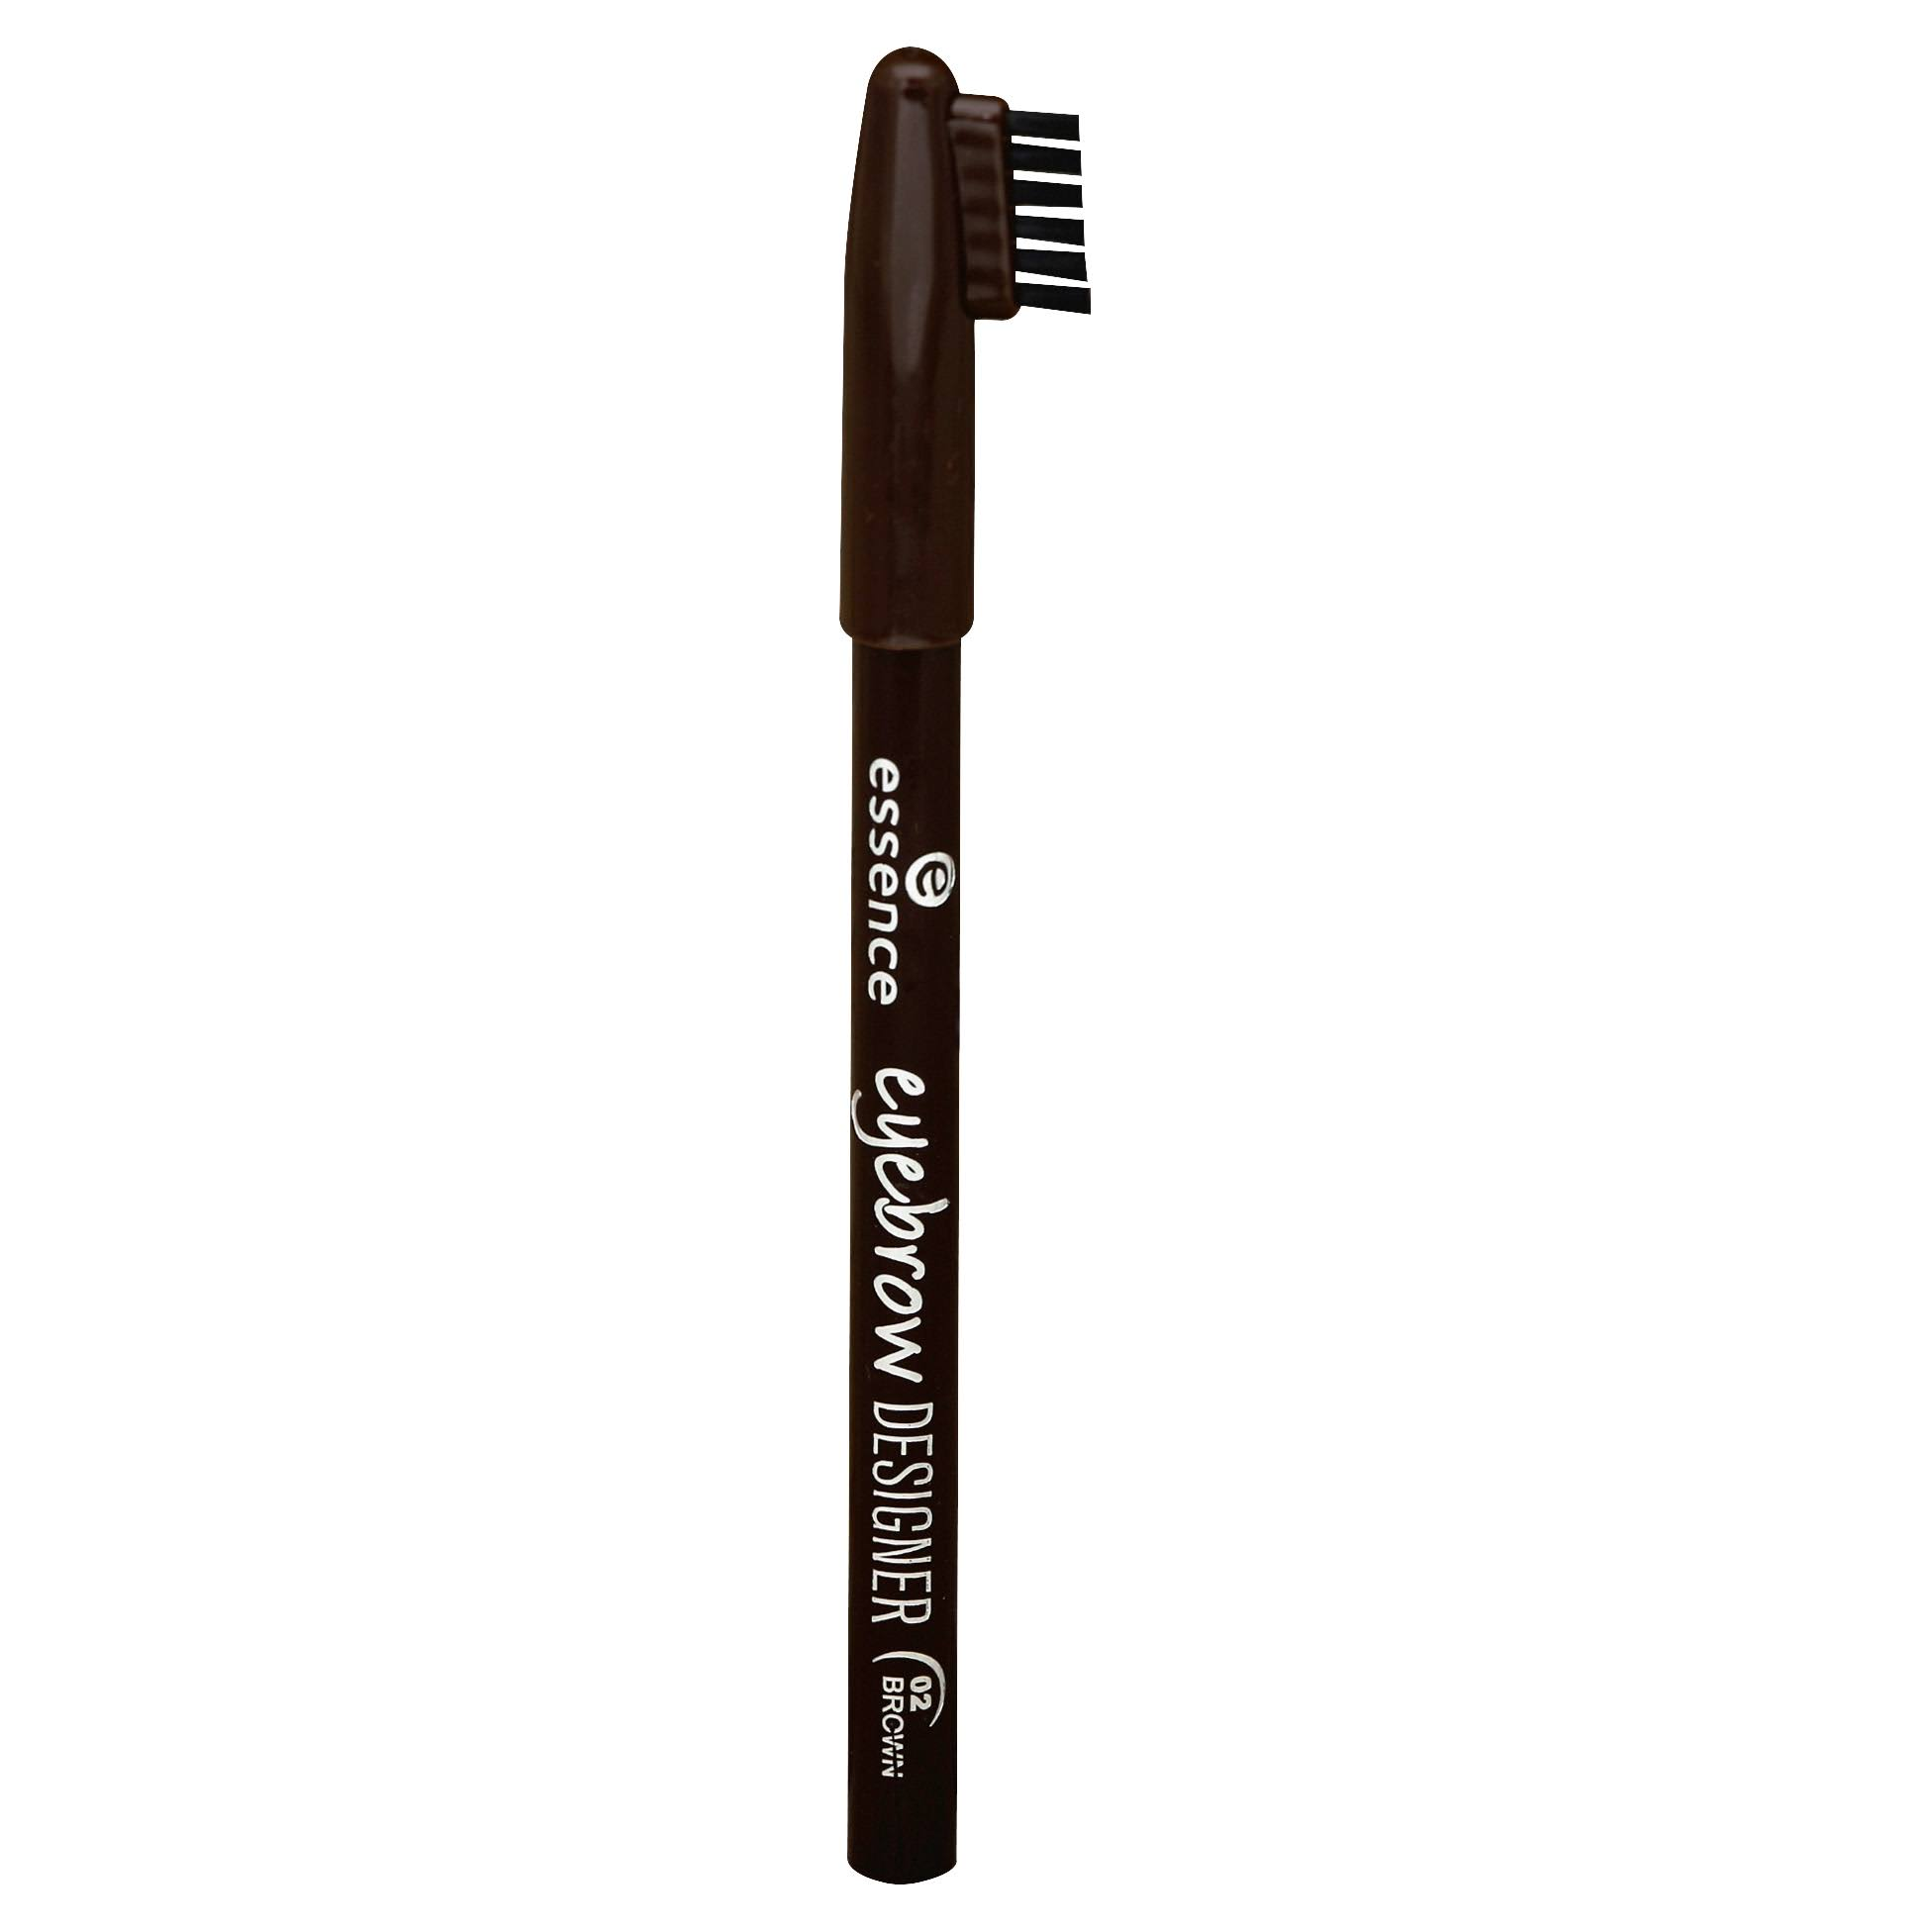 Essence Eyebrow Designer Pencil - 02 Brown